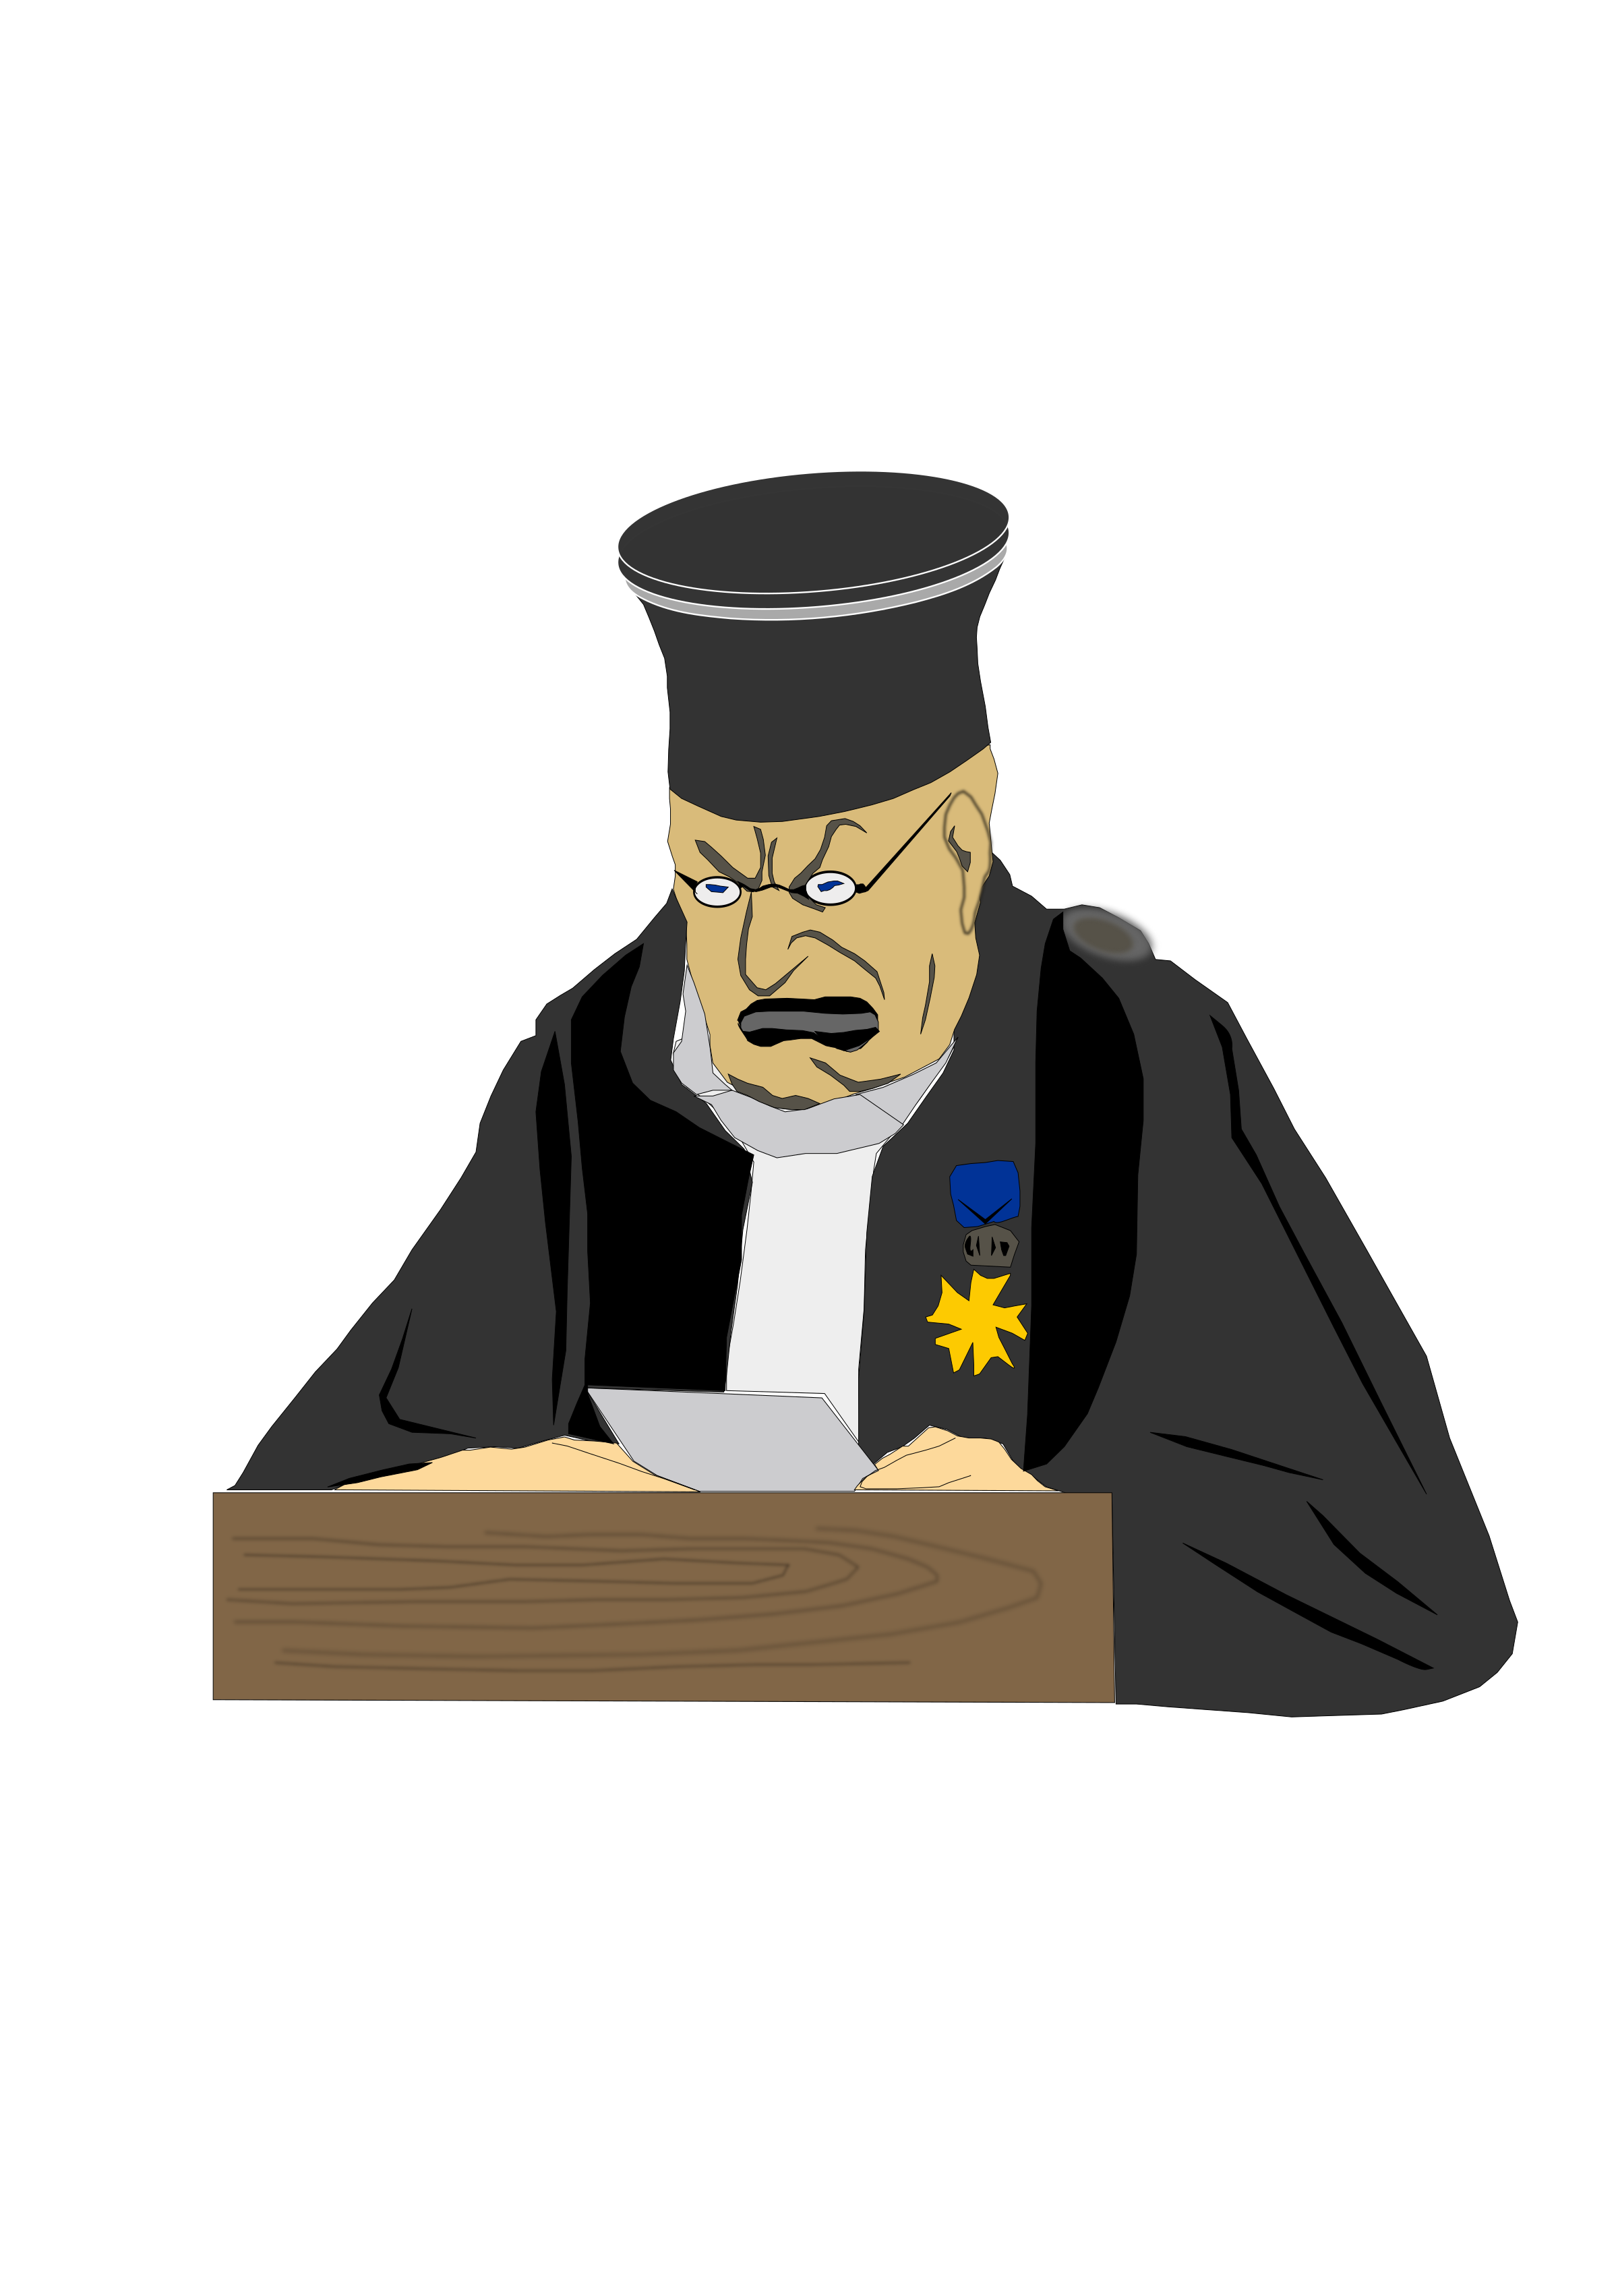 Clipart hammer judgement. The judge icons png